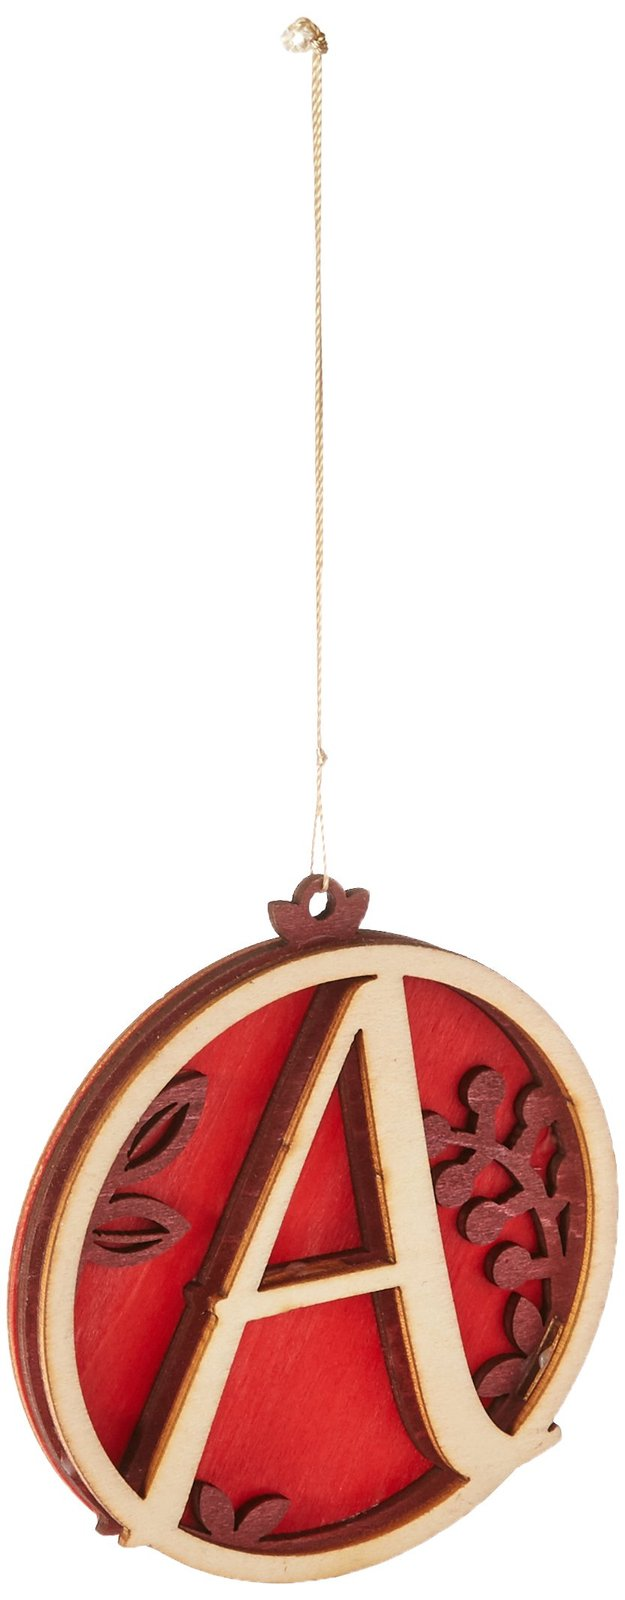 Enesco Flourish Letter A Monogramed Ornament, 3.2-Inch